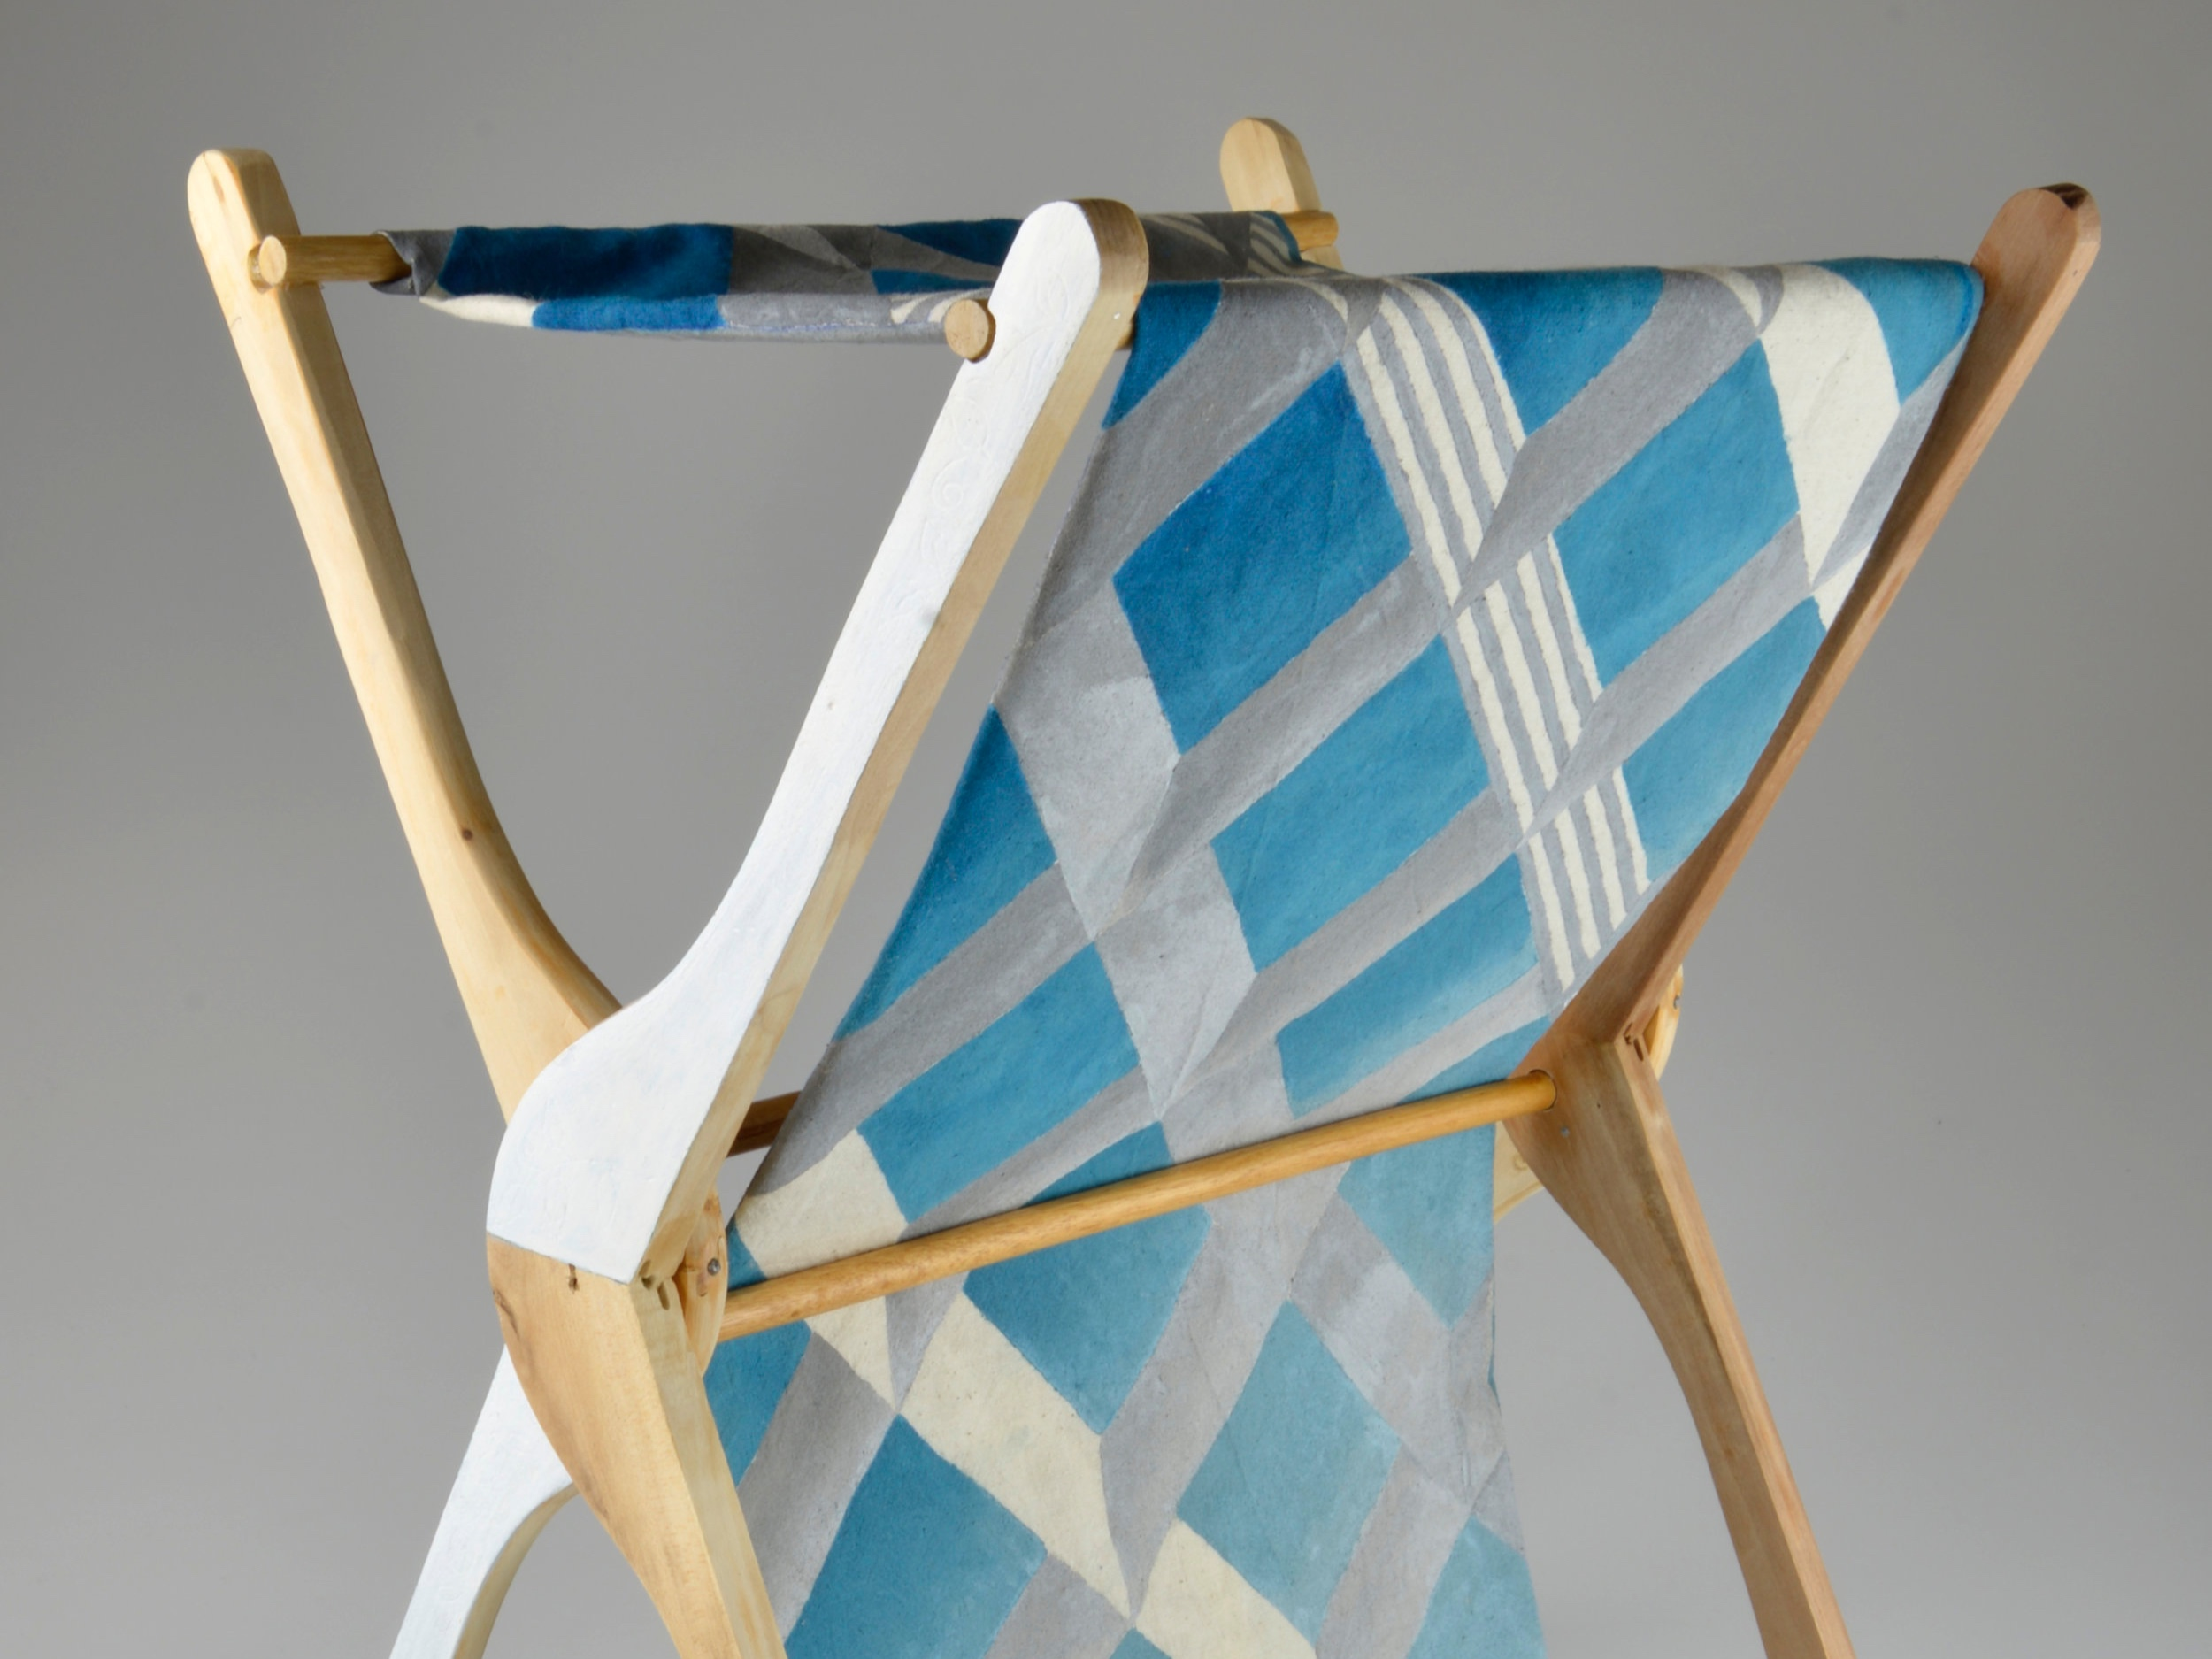 CAROL ANNE HEATHER: PRODUCT DESIGN - FABRIC DISPLAY STAND